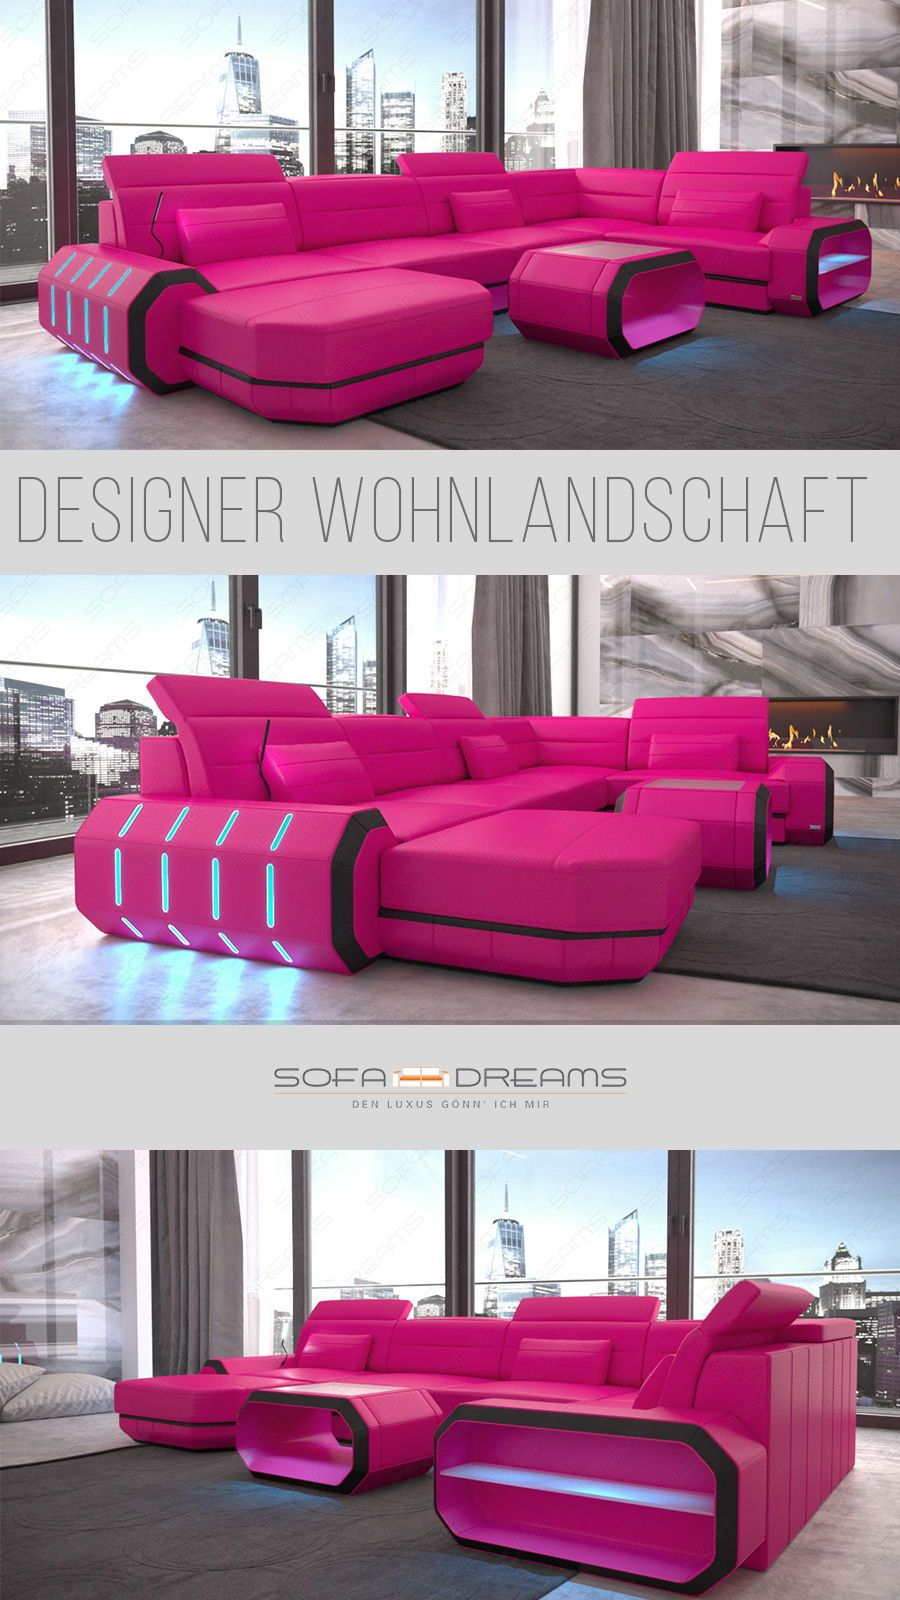 Eine Designer Wohnlandschaft Mit Beleuchtung Aus Led Modernes Sofa Mit Eckigem Design Und Cooler Bele Bed Headboard Design Luxury Couch Luxury Bedroom Master